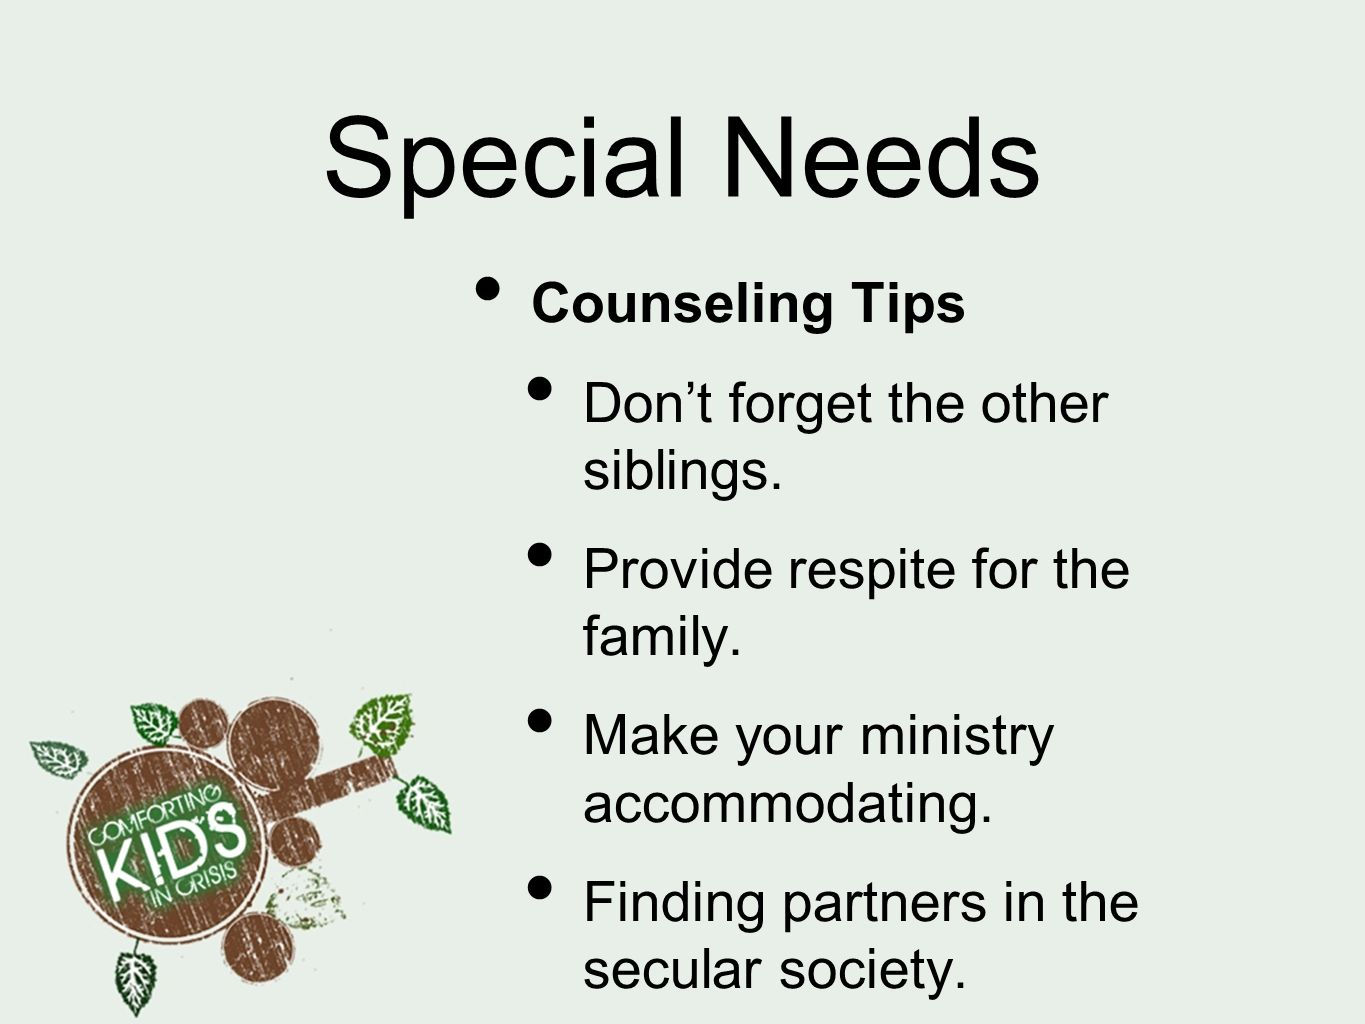 Special Needs Counseling Tips Don't forget the other siblings.